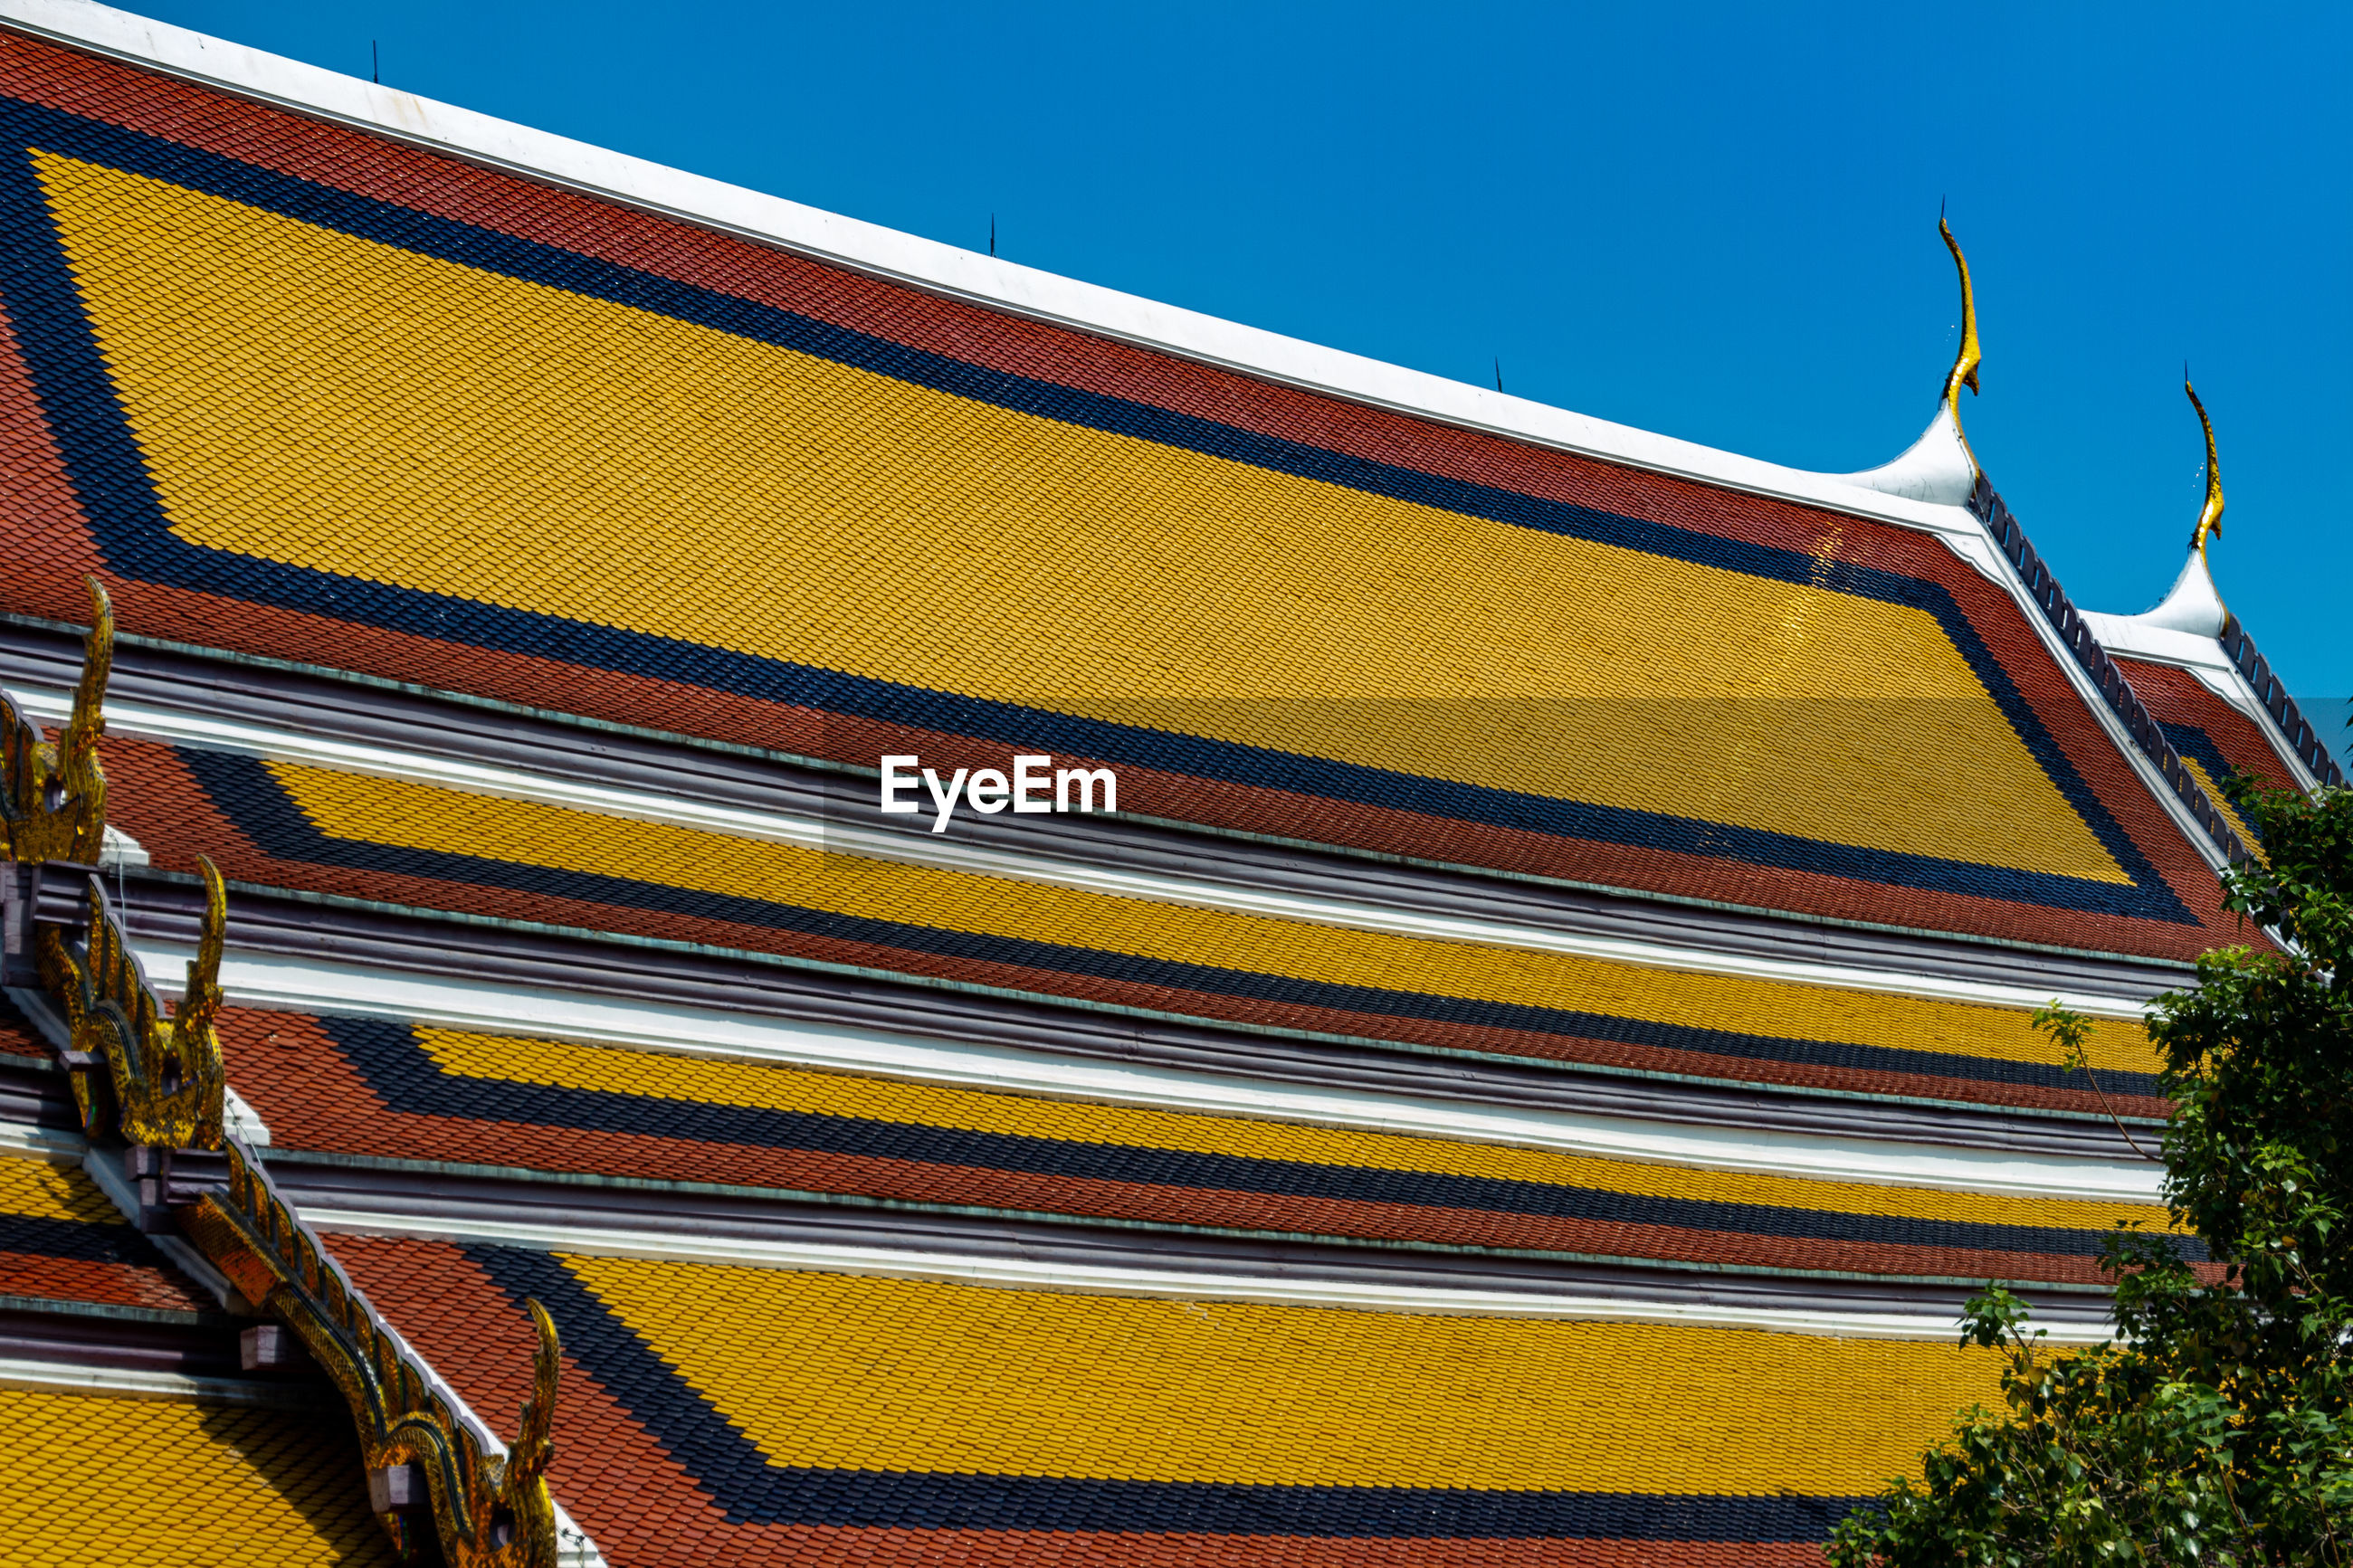 LOW ANGLE VIEW OF MULTI COLORED ROOF AGAINST SKY